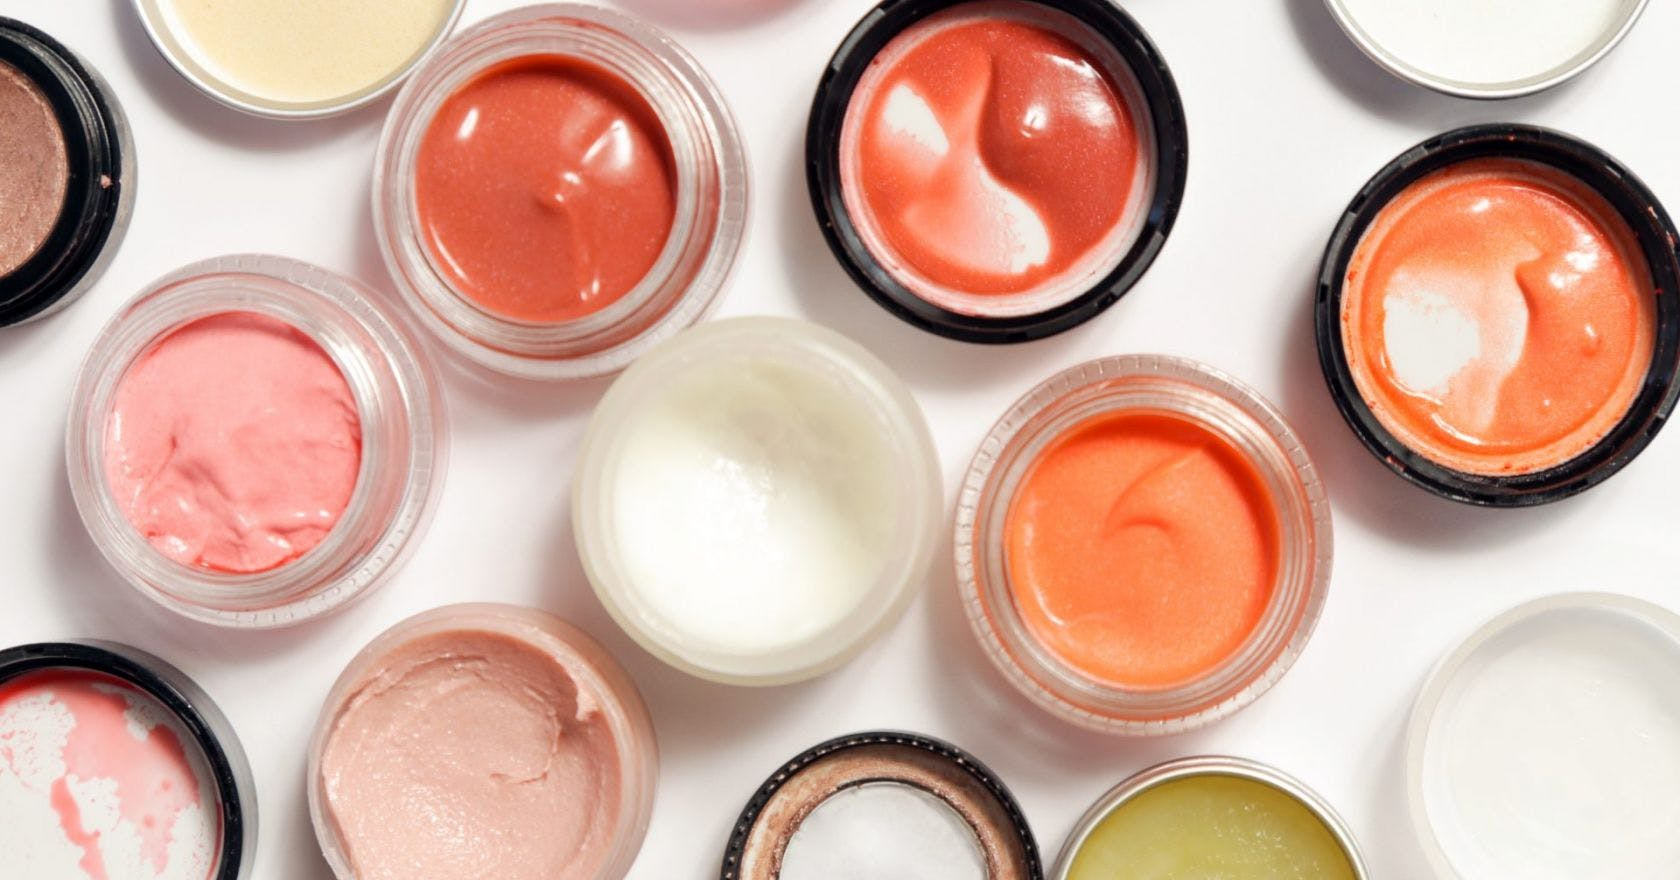 12 popular US beauty brands that have made their way across the pond